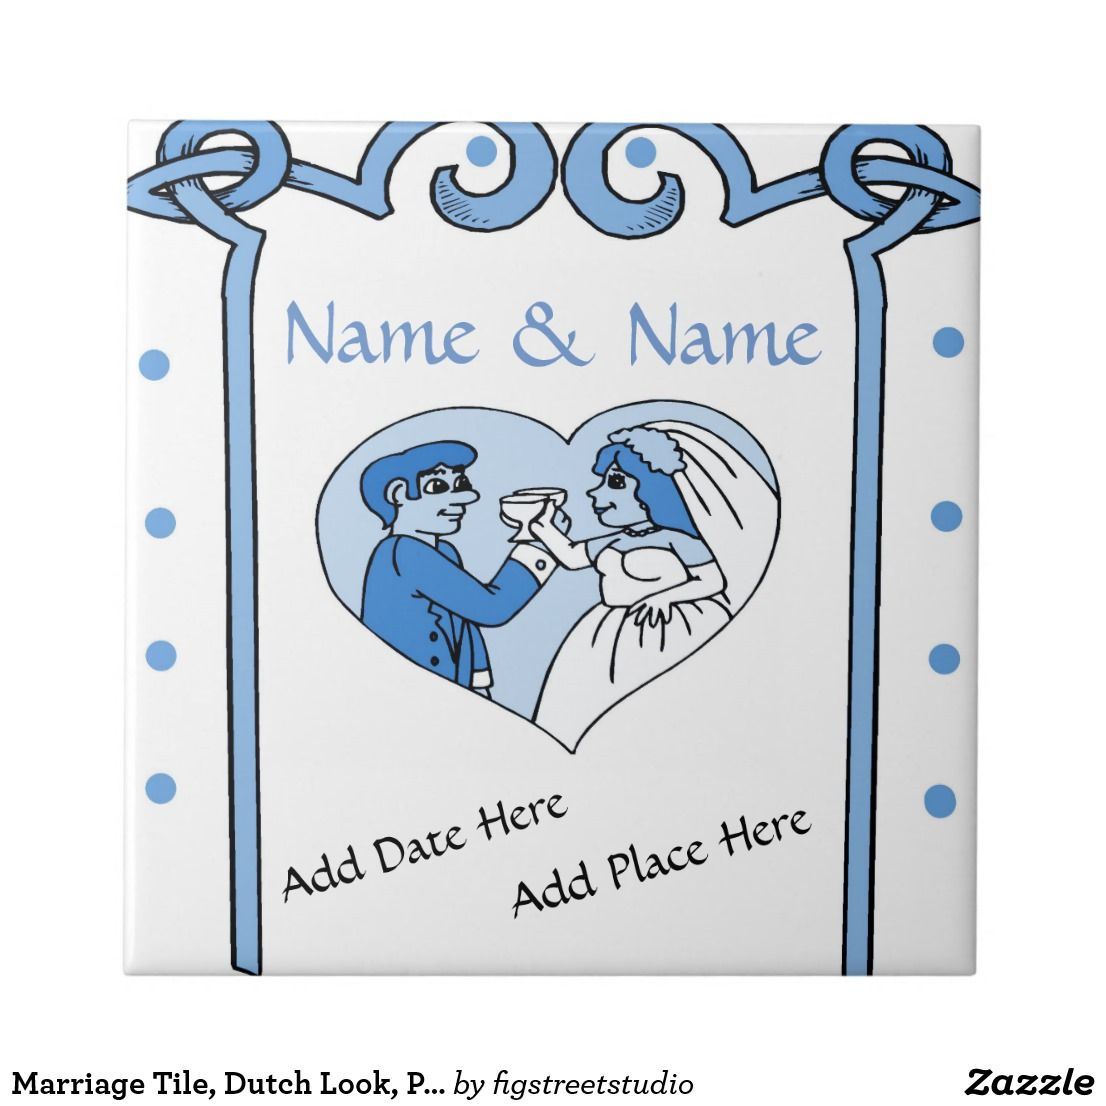 Marriage tile dutch look personalize ceramic tile delft marriage tile dutch look personalize ceramic tile dailygadgetfo Images